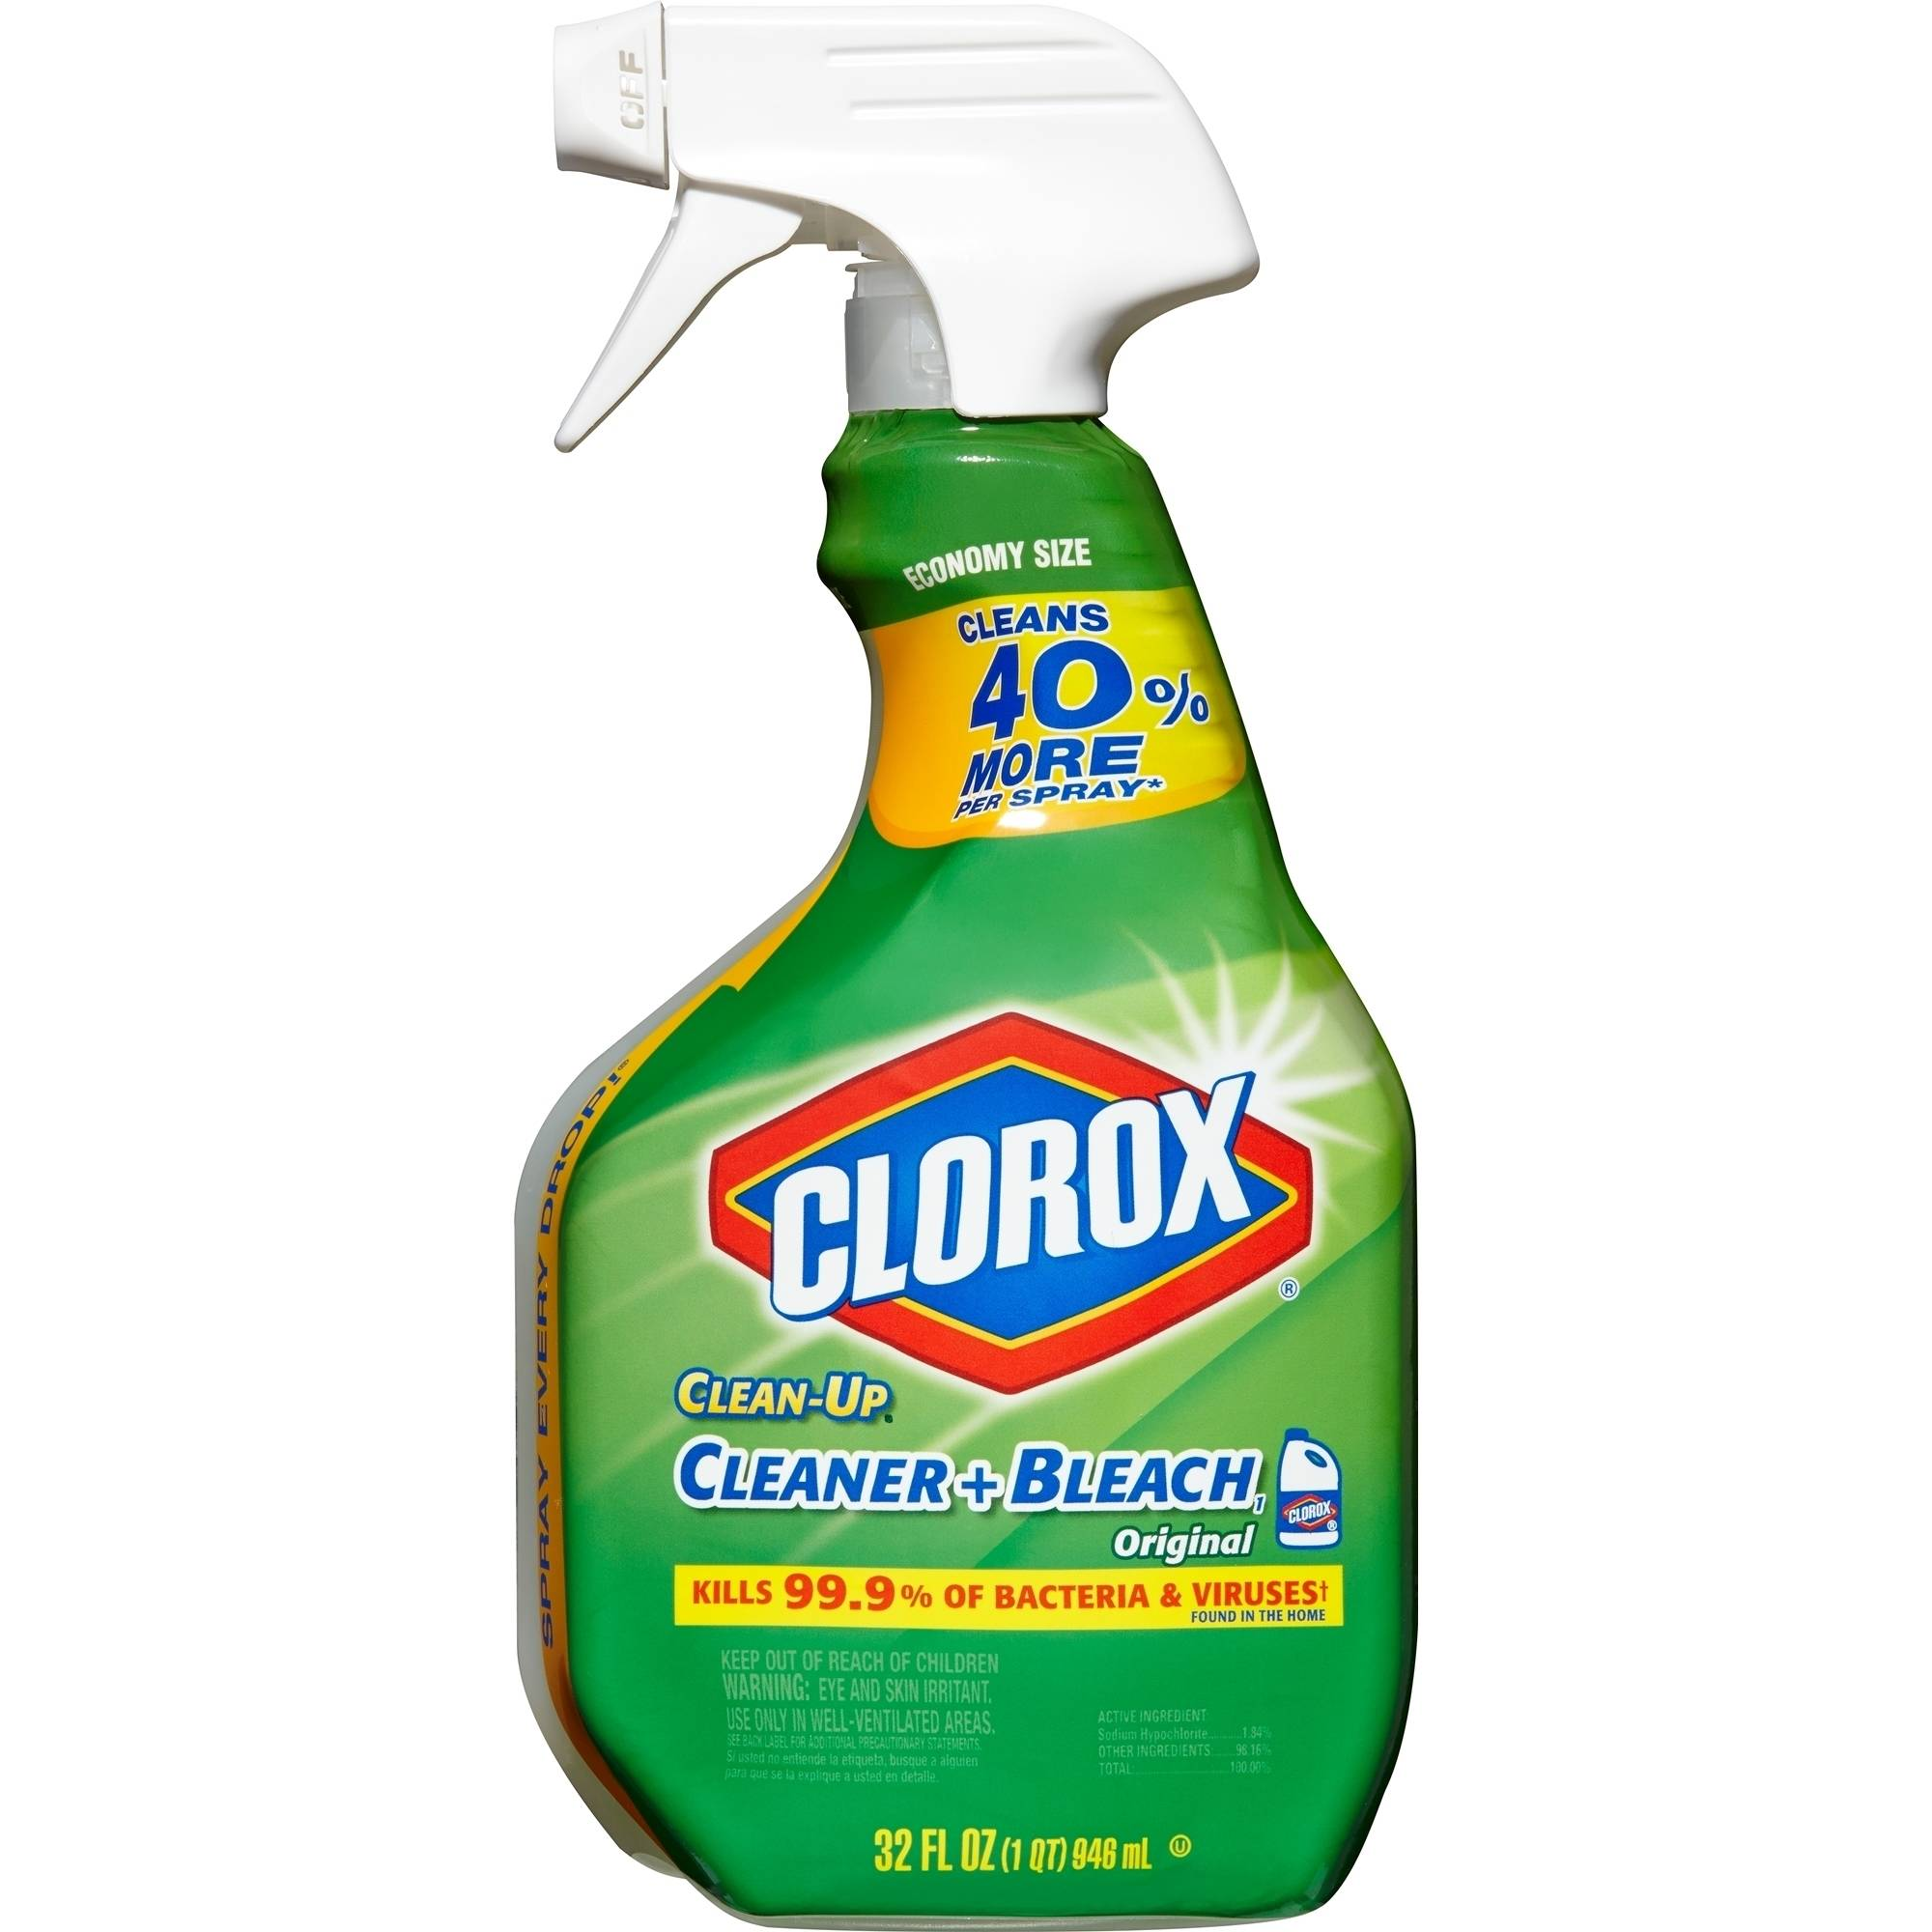 Clorox Clean-Up All Purpose Cleaner with Bleach, Spray Bottle, Original, 32 Ounces